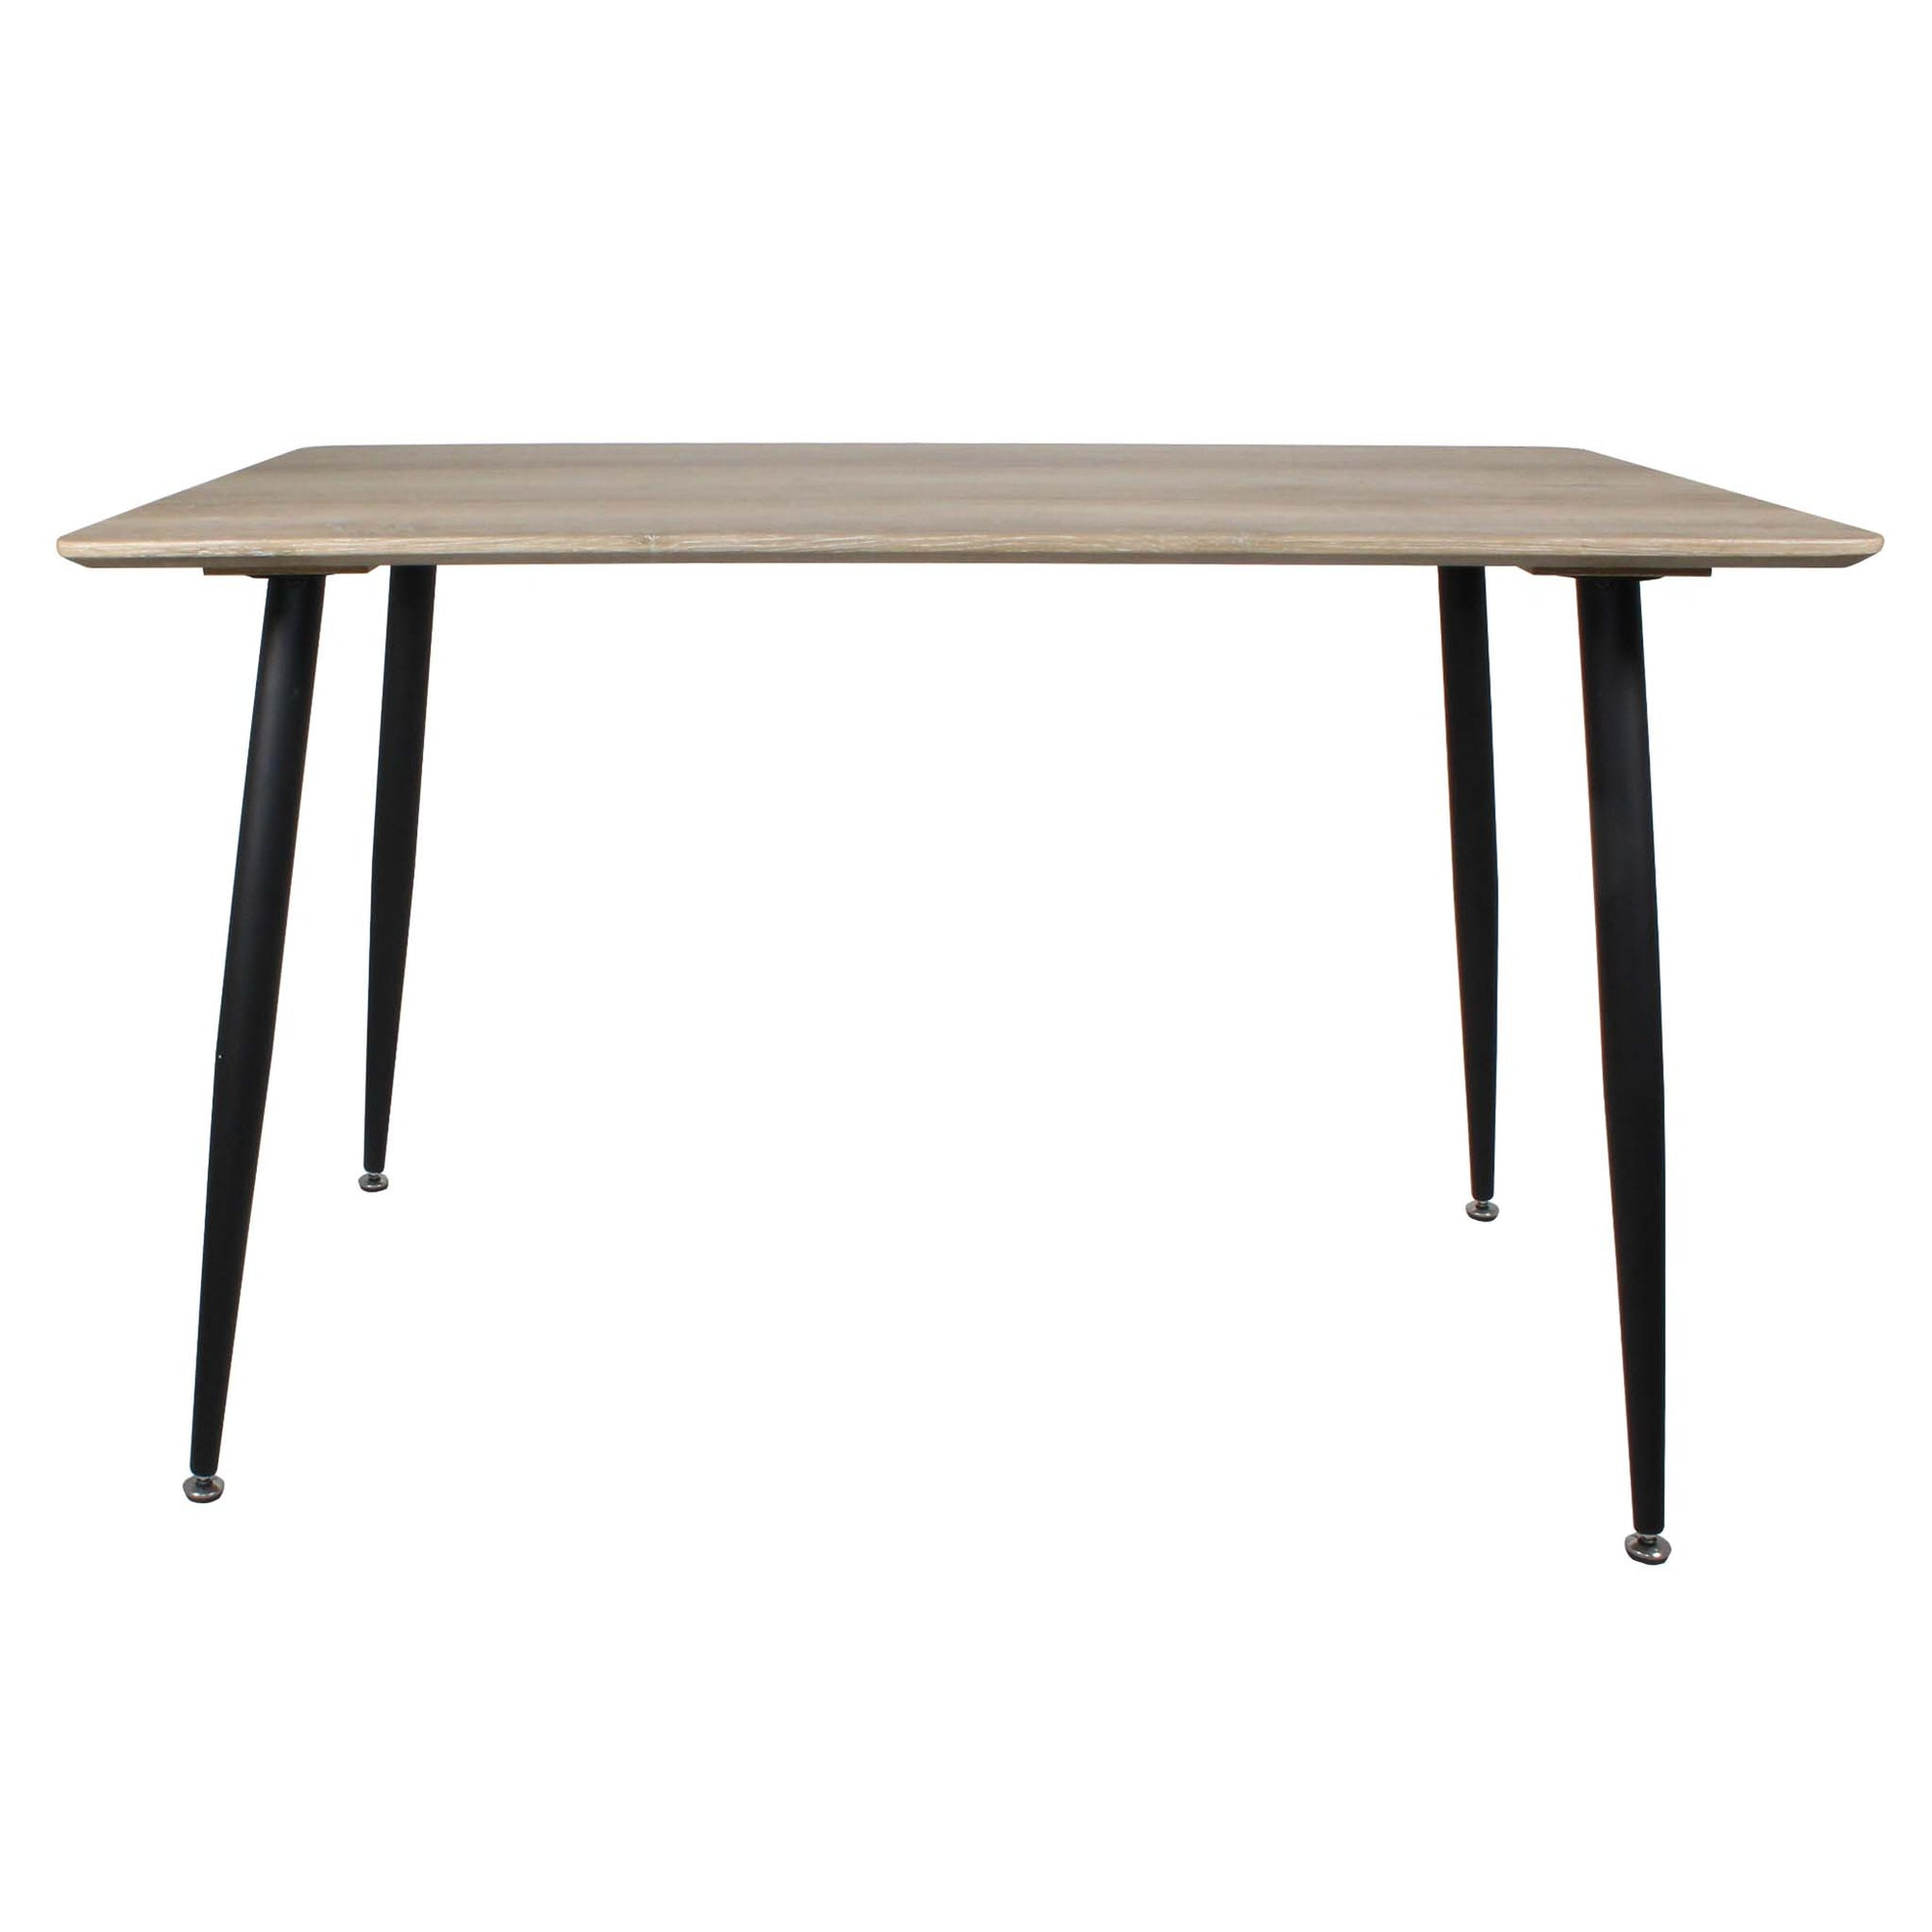 Wheaton Dining Table by Roseland Furniture